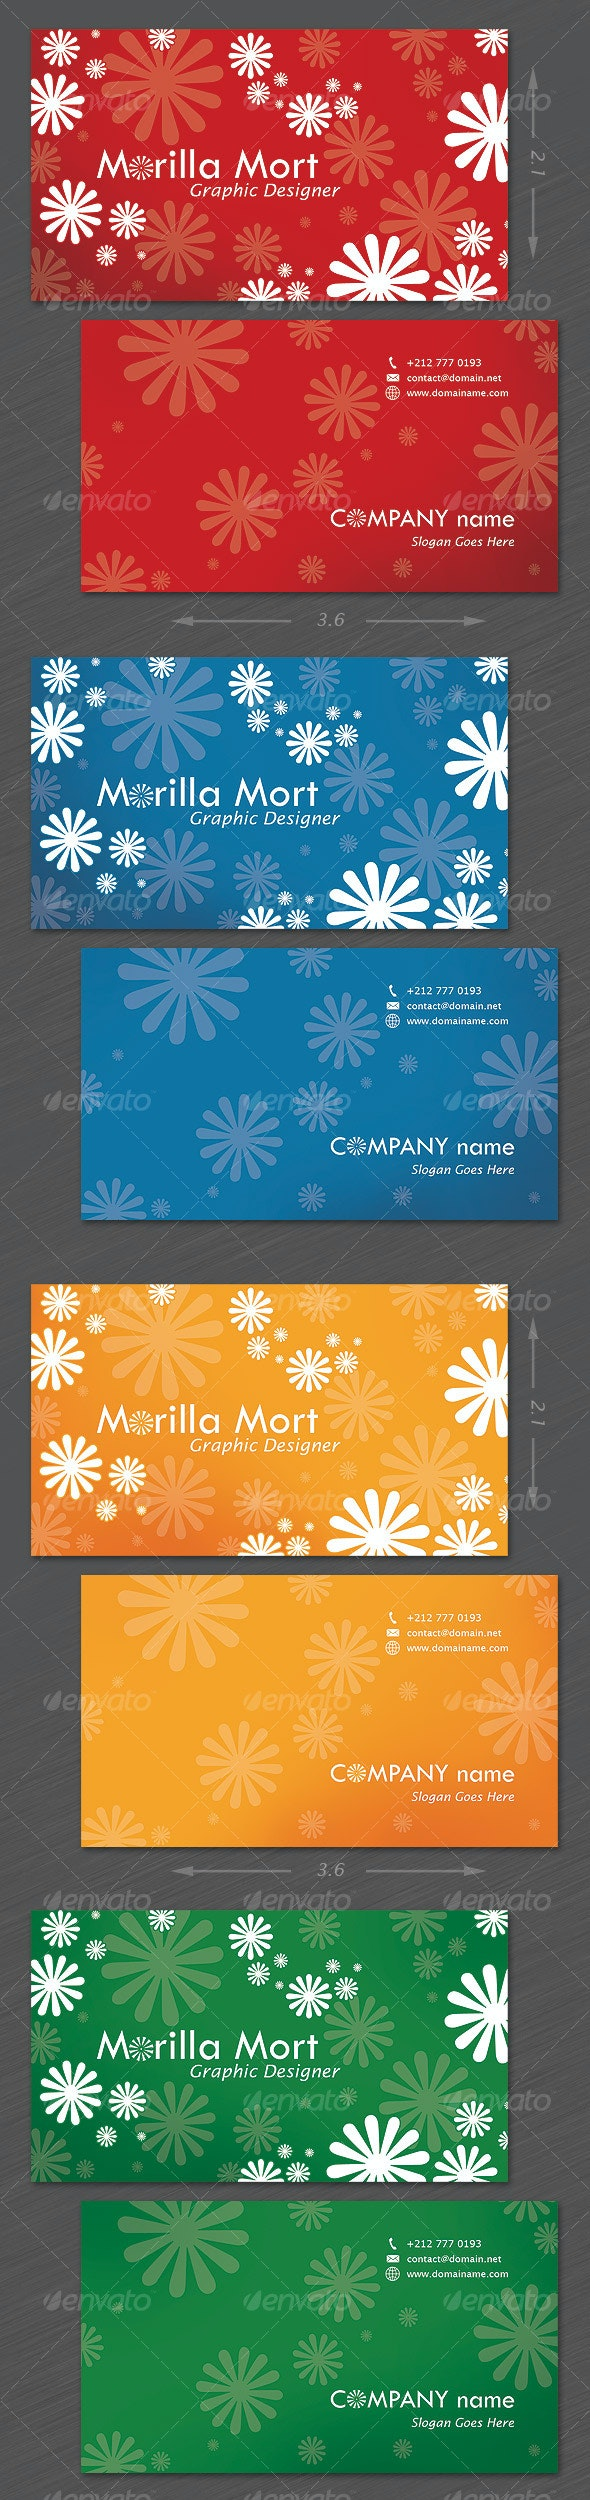 Delightful Personal Card - 4 colors - Retro/Vintage Business Cards